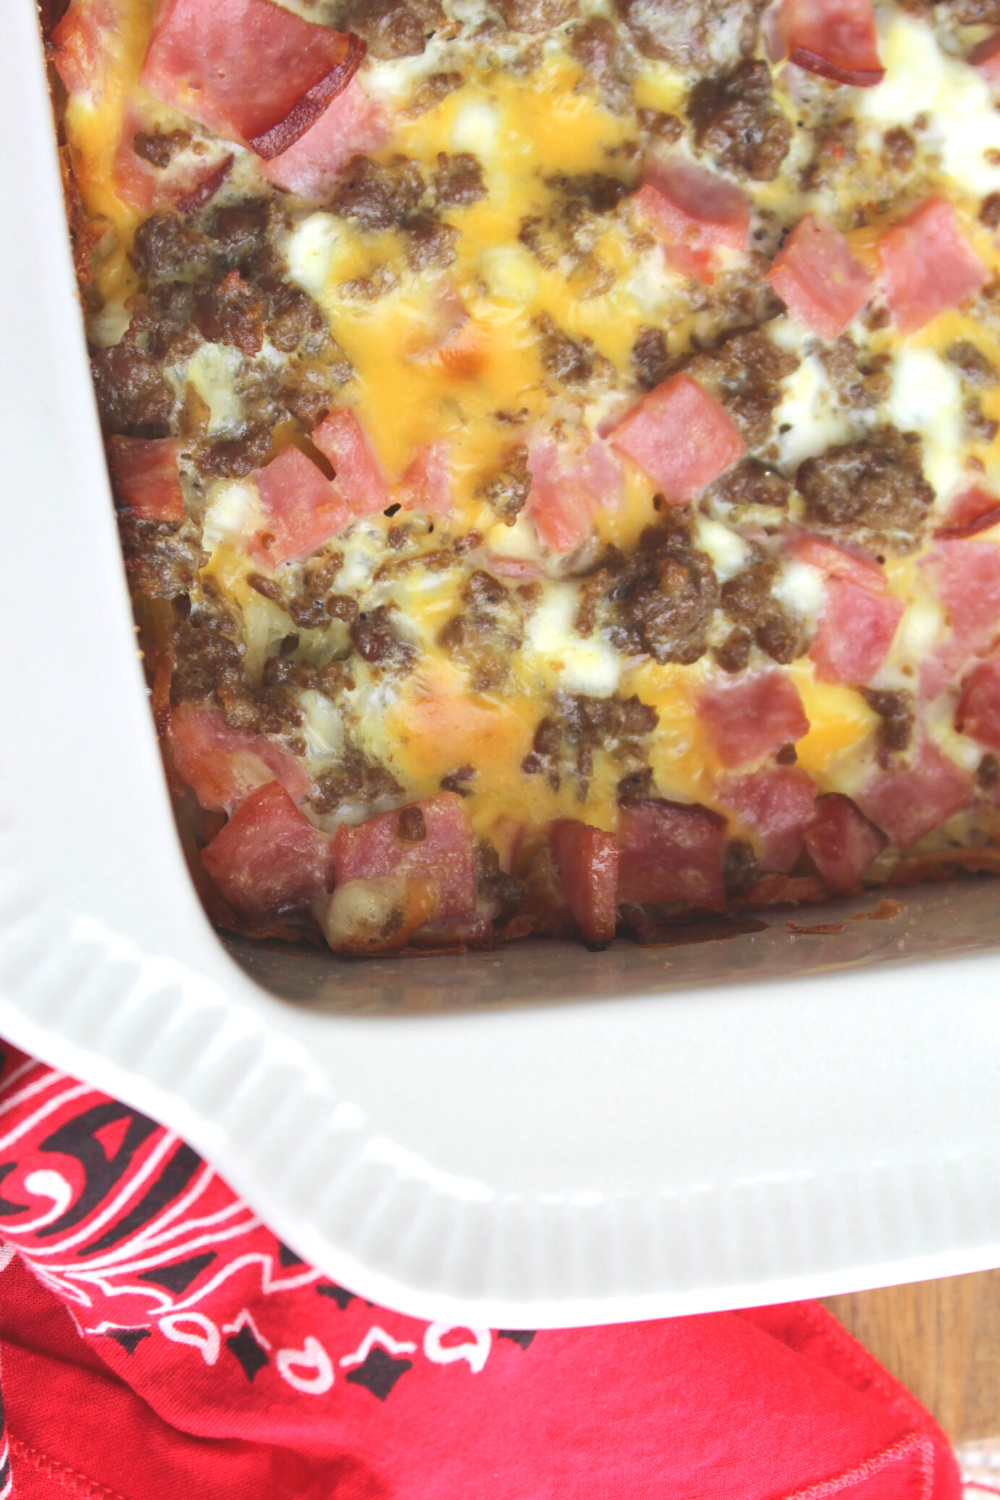 Hash Browns Farmer's Breakfast Casserole Christmas Morning Breakfast Casserole Overnight Breakfast Casserole The Best Recipe Easy and Simple Sausage Ham Eggs Cheese Brunch and Breakfast Ideas My Farmhouse Table